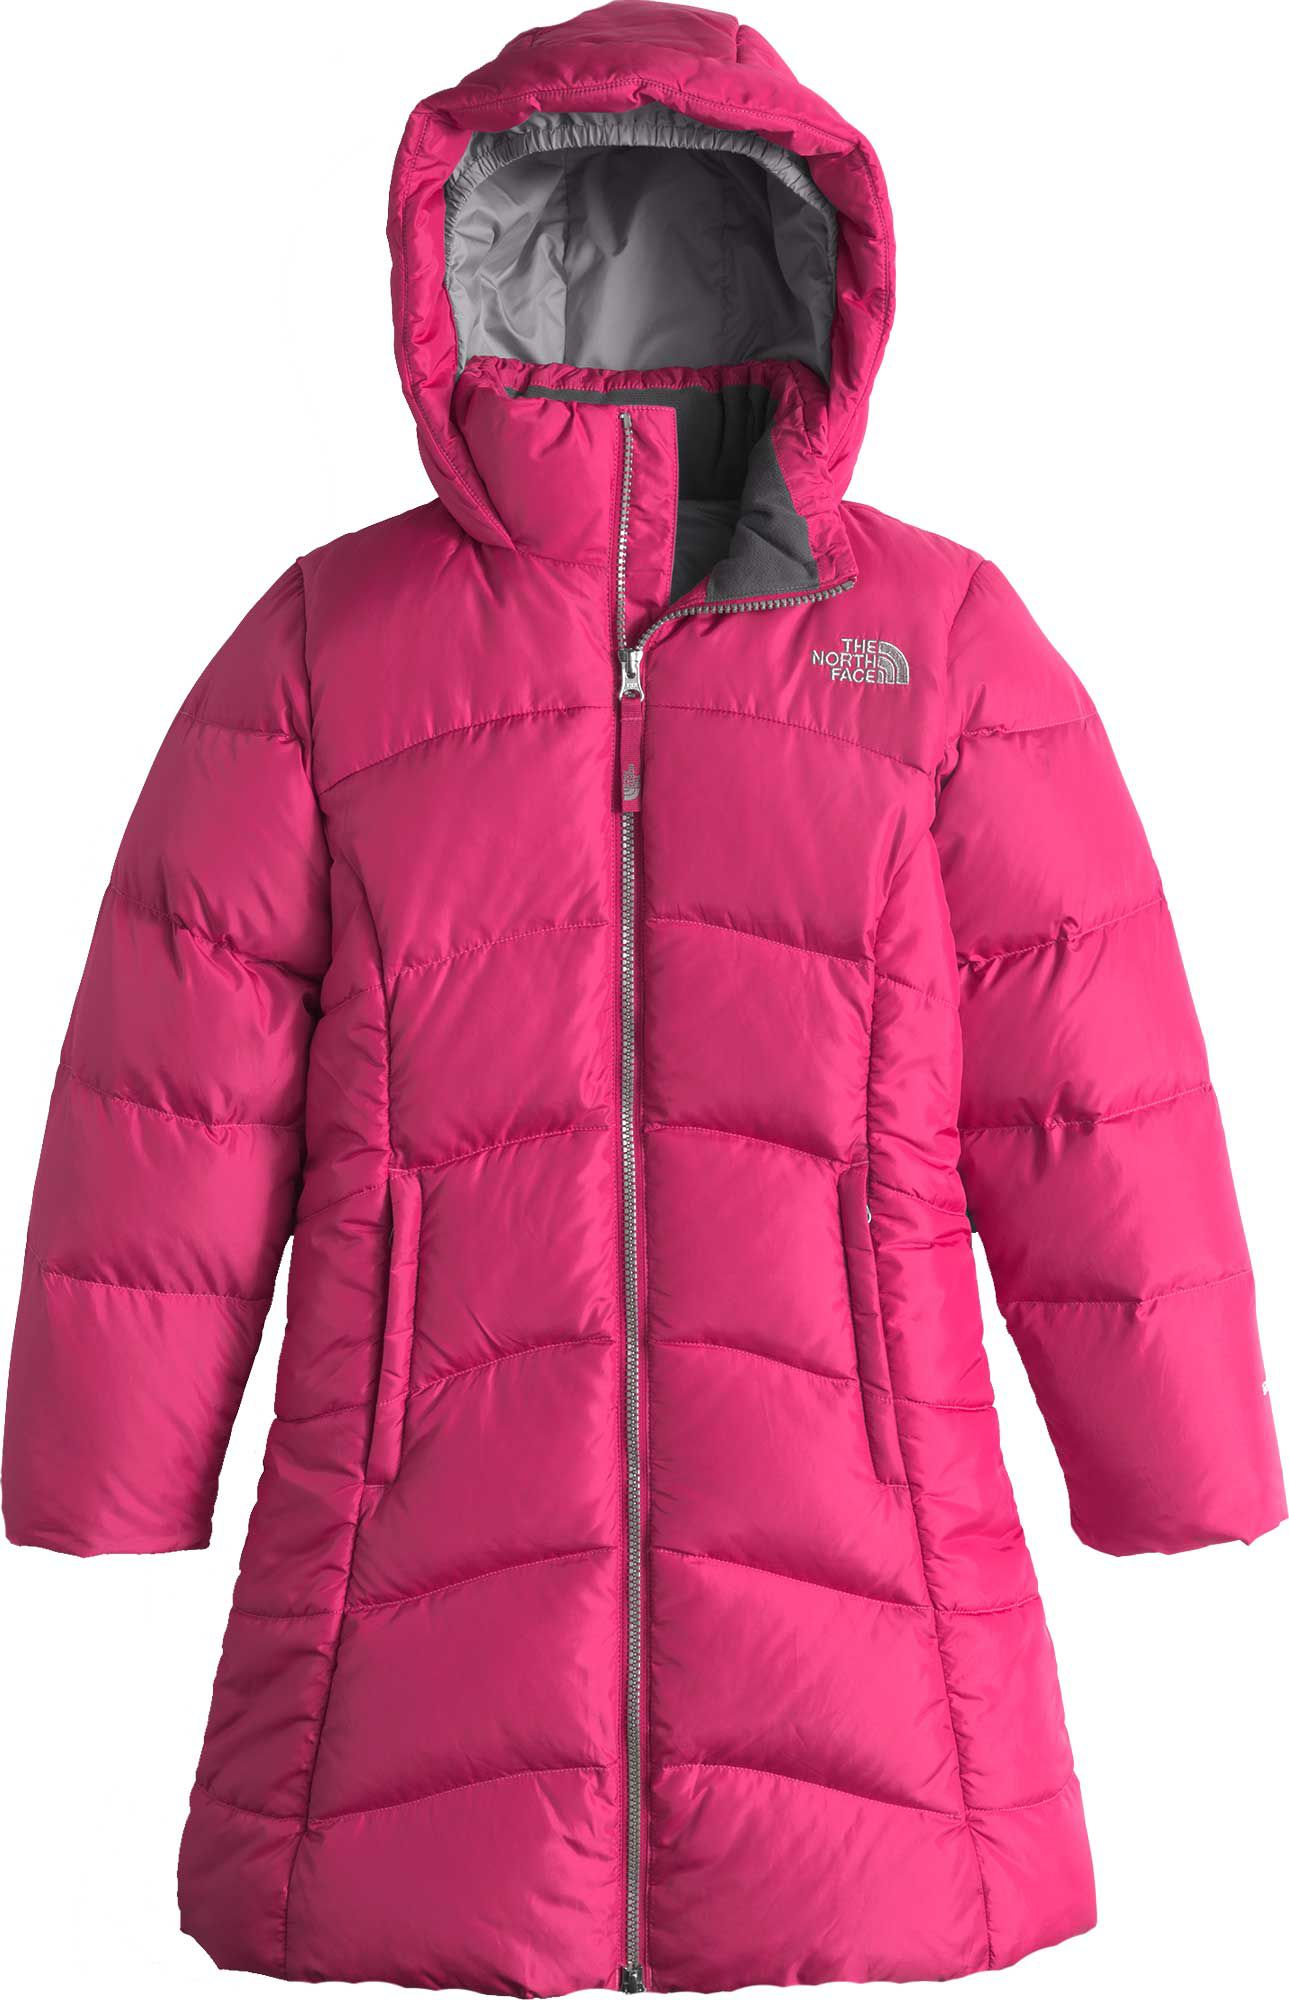 Shop our girls coat sale for great prices on girls coats, girls winter coats and girls jackets. You'll find outstanding bargains in our clearance sale. Don't forget to shop our entire girls sale clothing for .